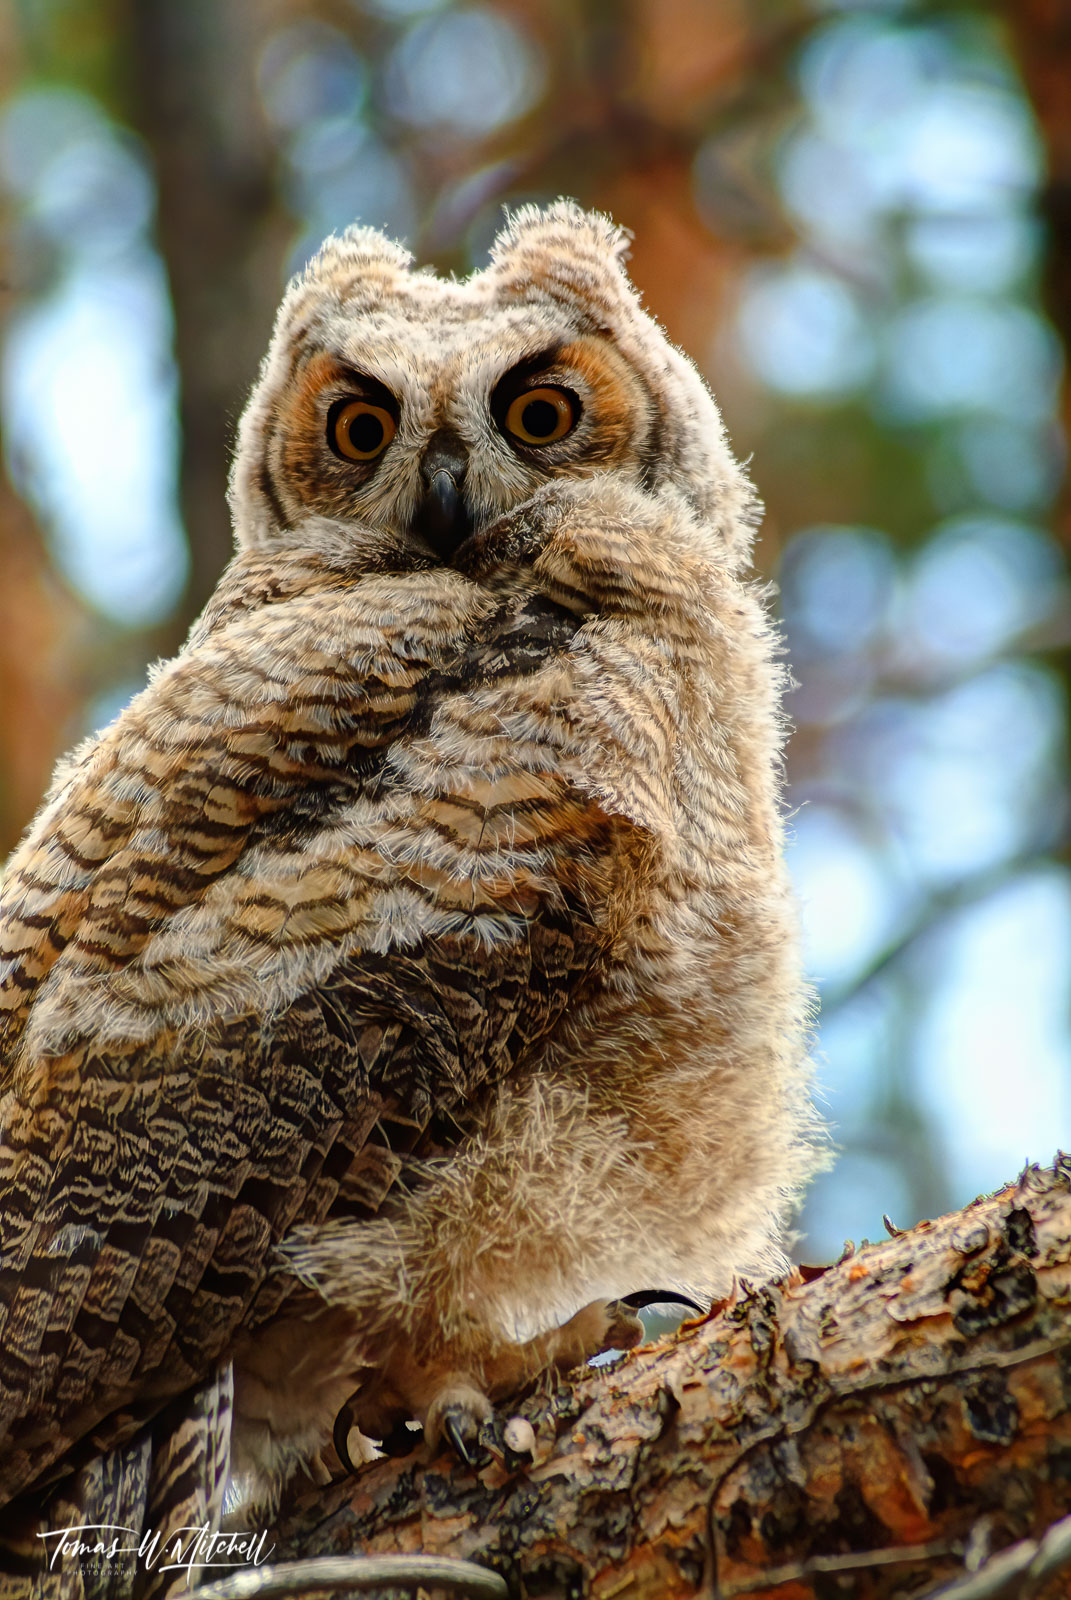 limited edition, fine art, prints, great horned owl, uinta mountains, utah, forests, owls, photo